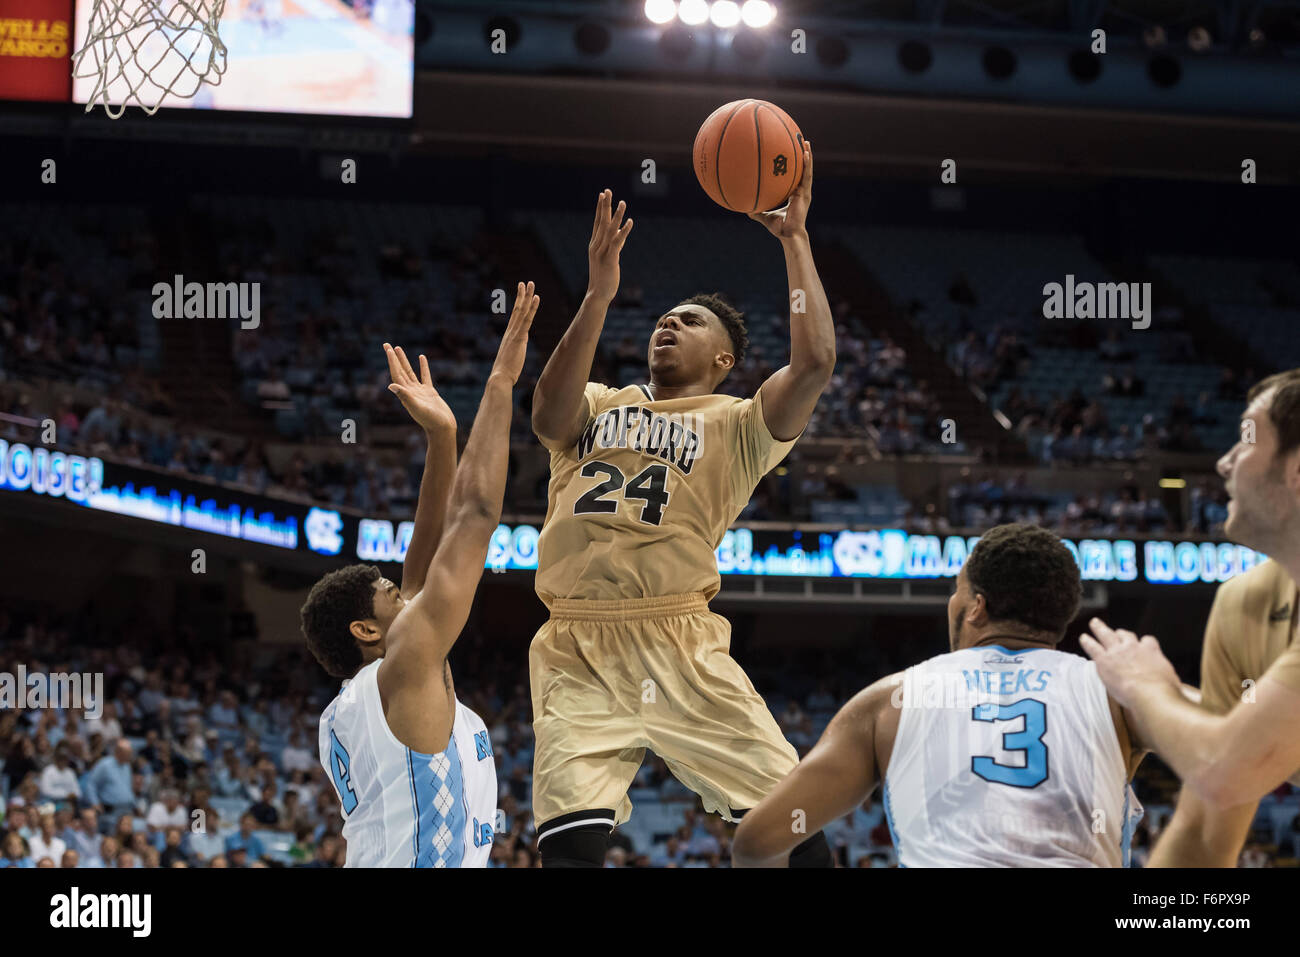 Chapel Hill, North Carolina, USA. 18 Nov, 2015. Wofford Terriers avant Justin Gordon (24) en action au cours de Photo Stock